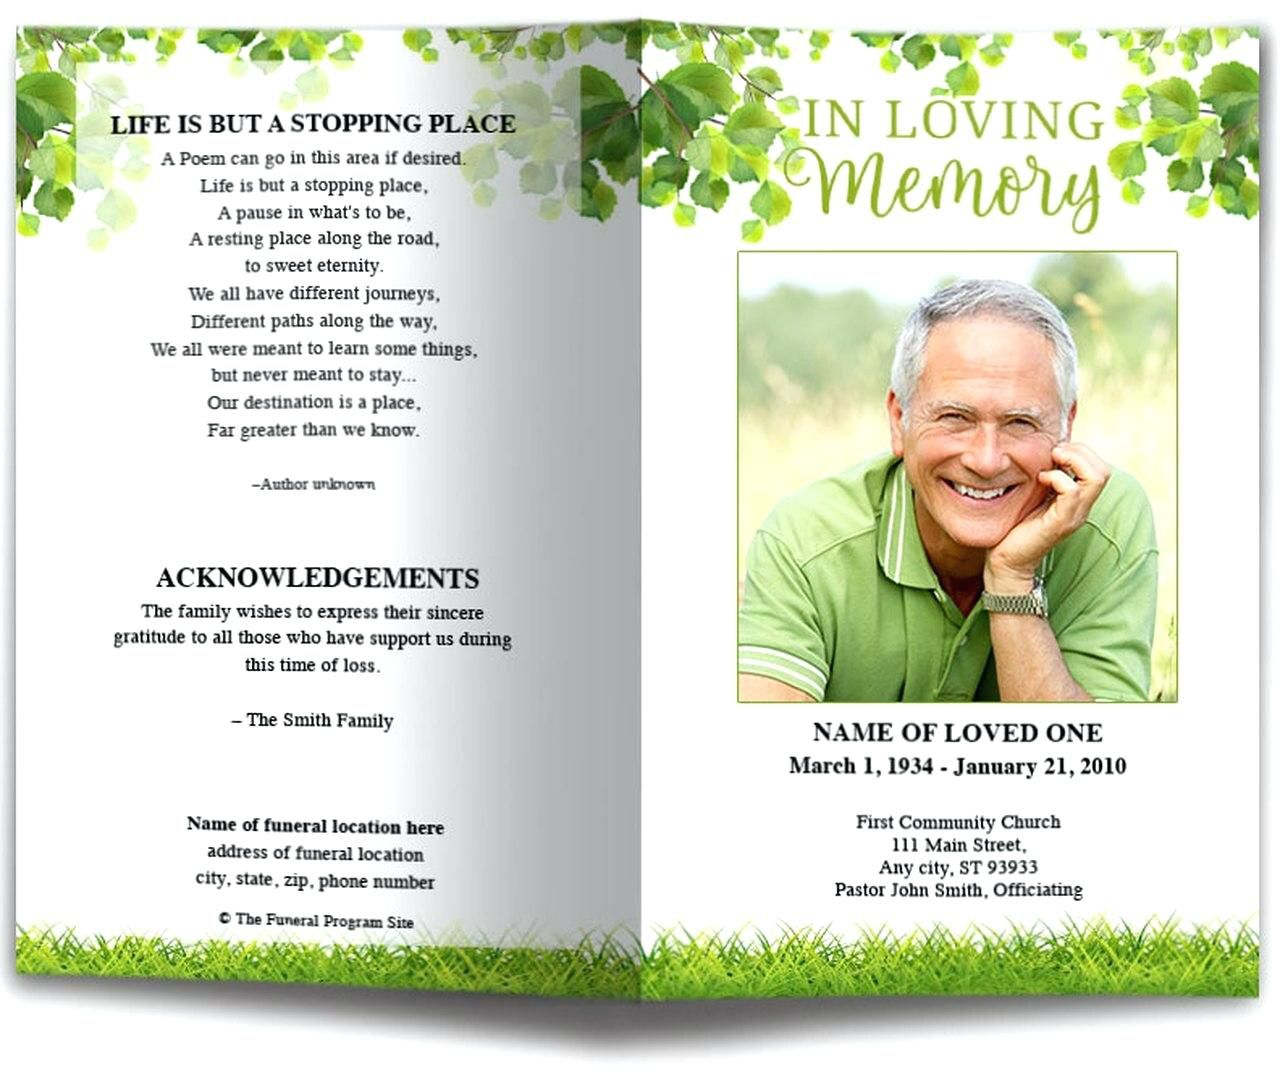 009 Marvelou Funeral Program Template Free Example  Online Printable Download PublisherFull